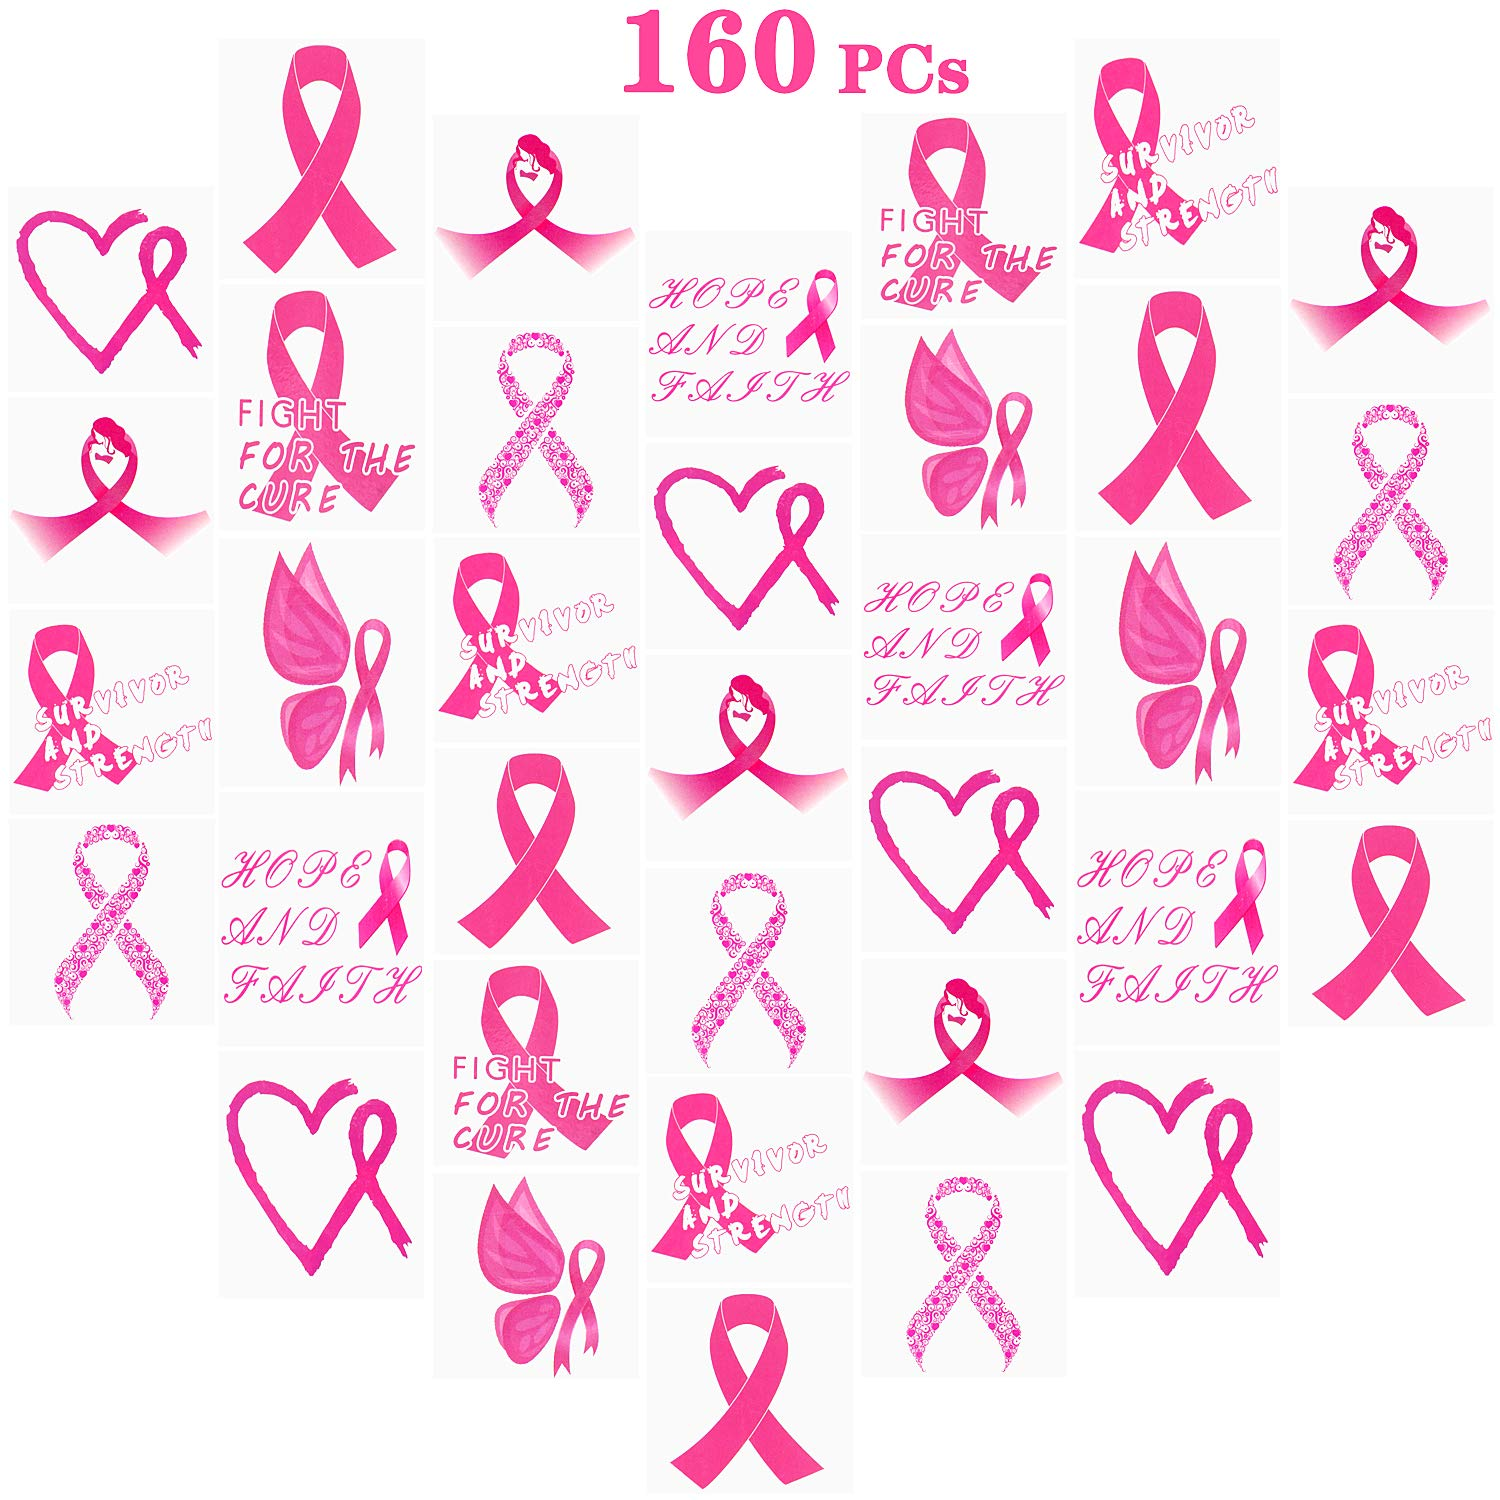 160 PCs Pink Ribbon Tattoos Temporary Ta Cancer Limited time for free shipping Max 61% OFF Awareness Breast